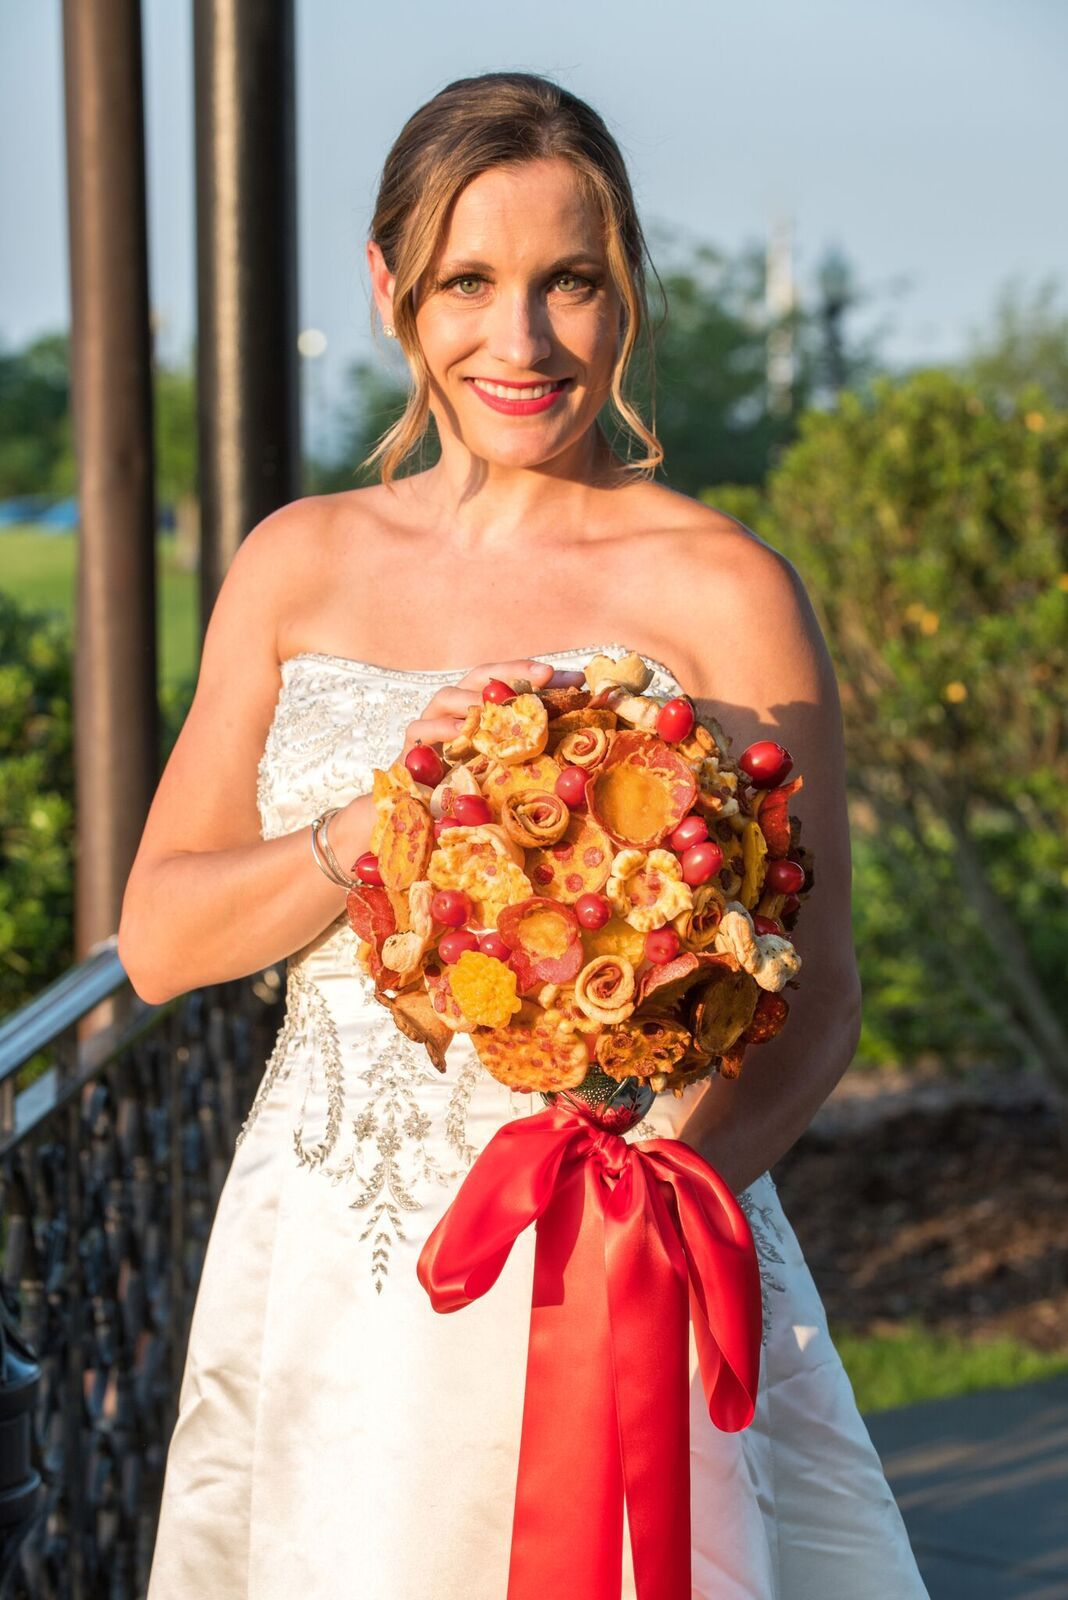 Brides are carrying pizza bouquets down the aisle instead of flowers izmirmasajfo